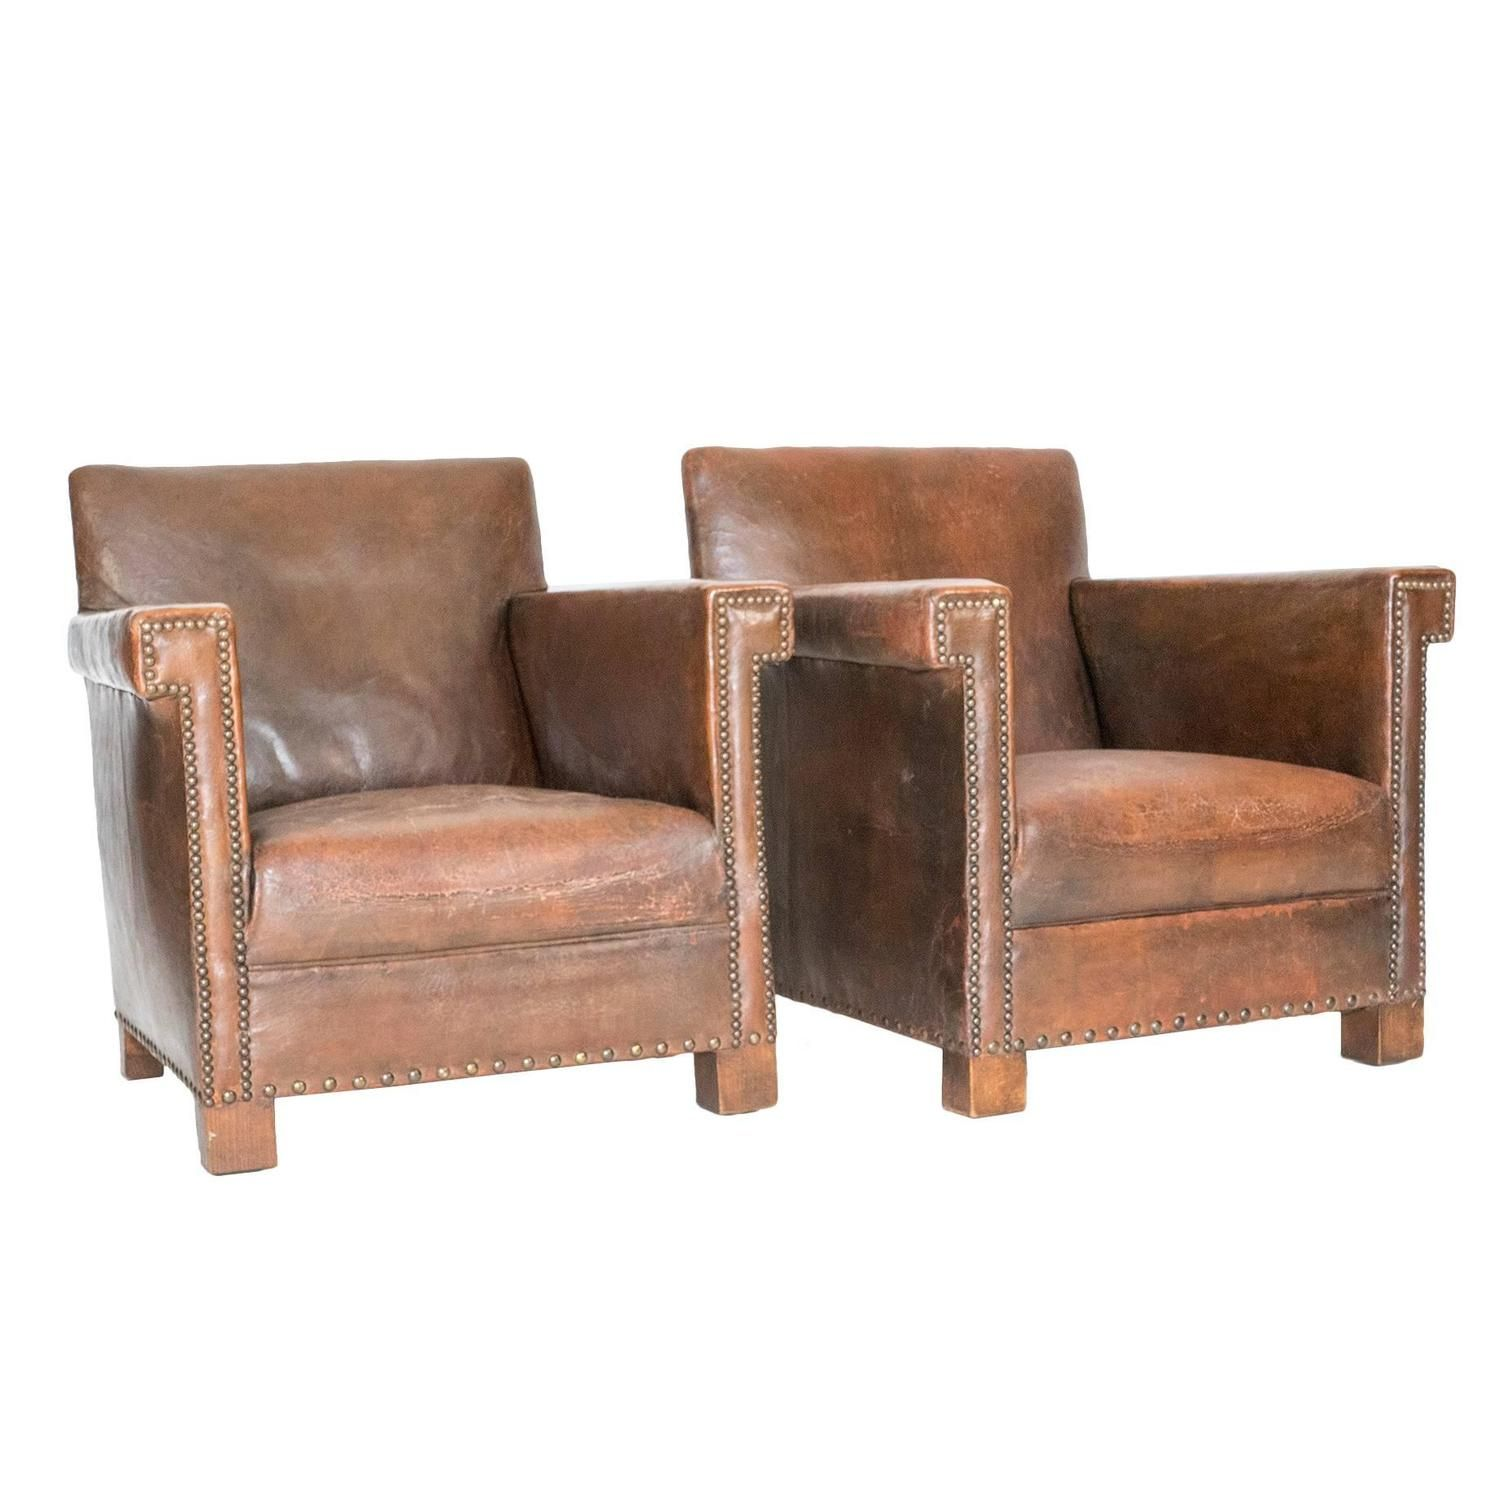 Petrie Leather 2 Piece Left Arm Chaise Sectional Sofa